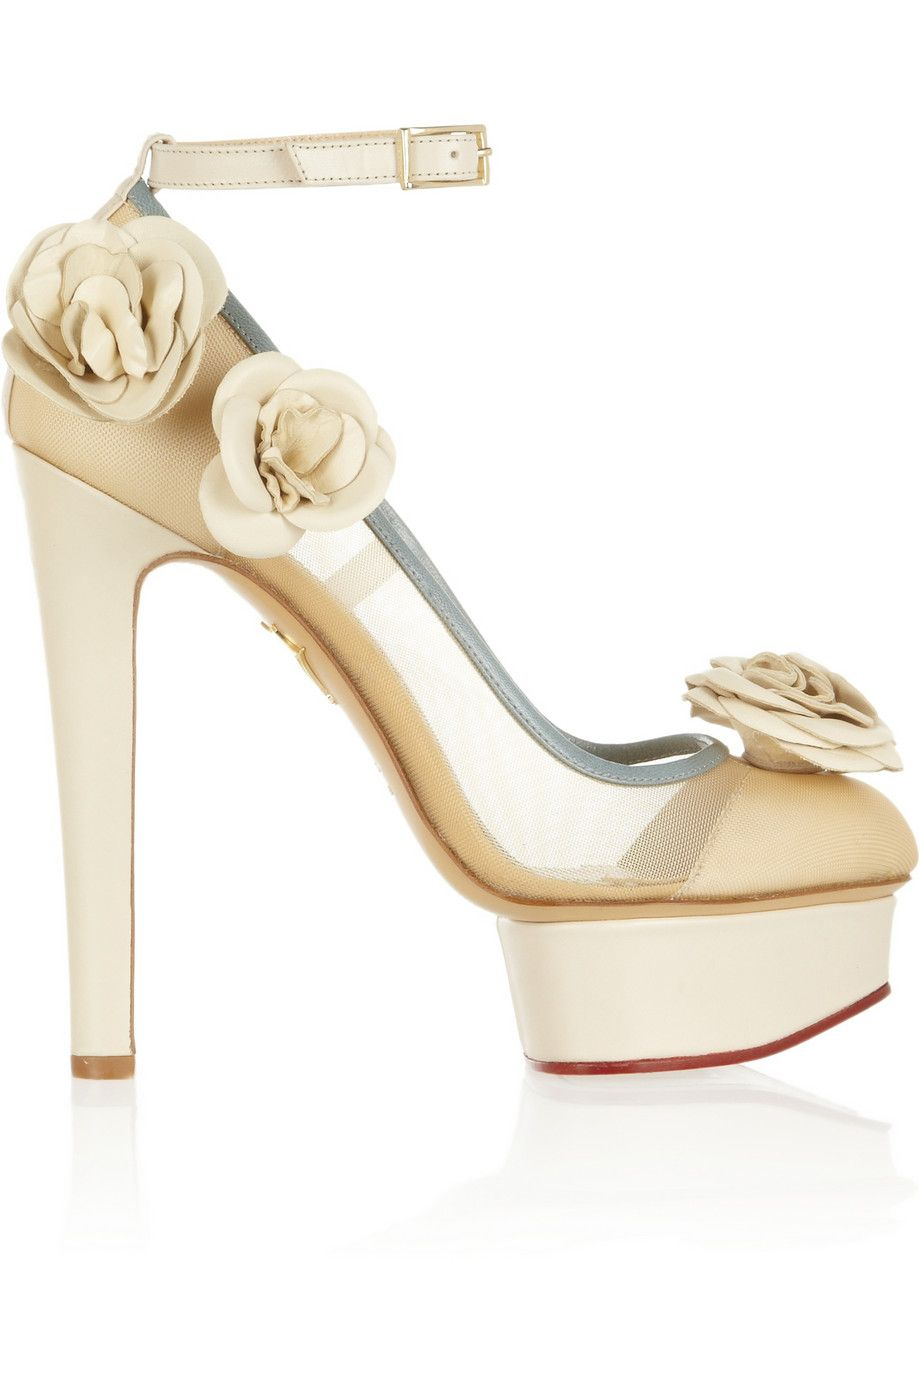 "Charlotte Olympia Flora Leather and Mesh Pumps, $1,200; &lt;a target=""_blank"" href=""http://rstyle.me/n/ytgapbc6jf""&gt;net-a-porter.com&lt;/a&gt;   <!--EndFragment-->"